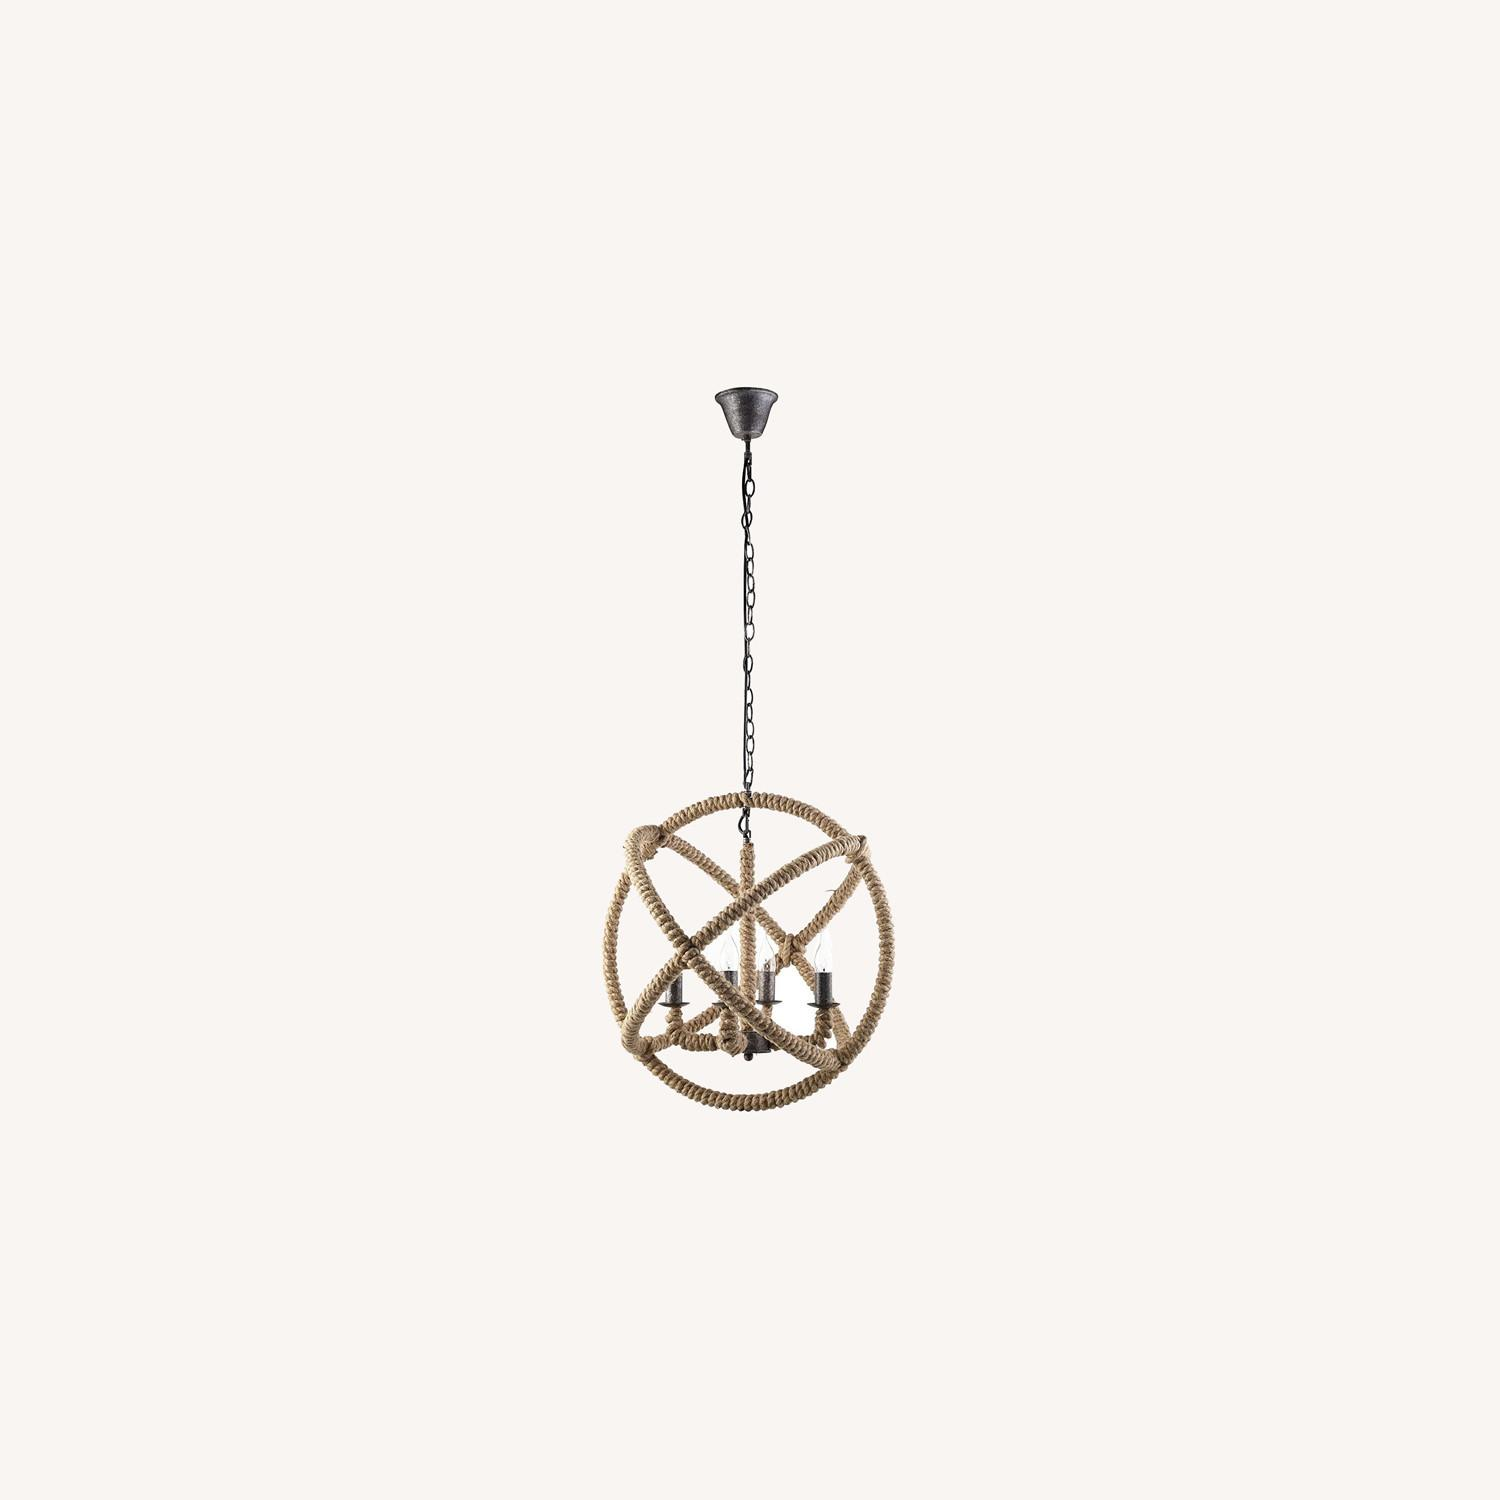 Modern Chandelier In Brown Rope Construction - image-5